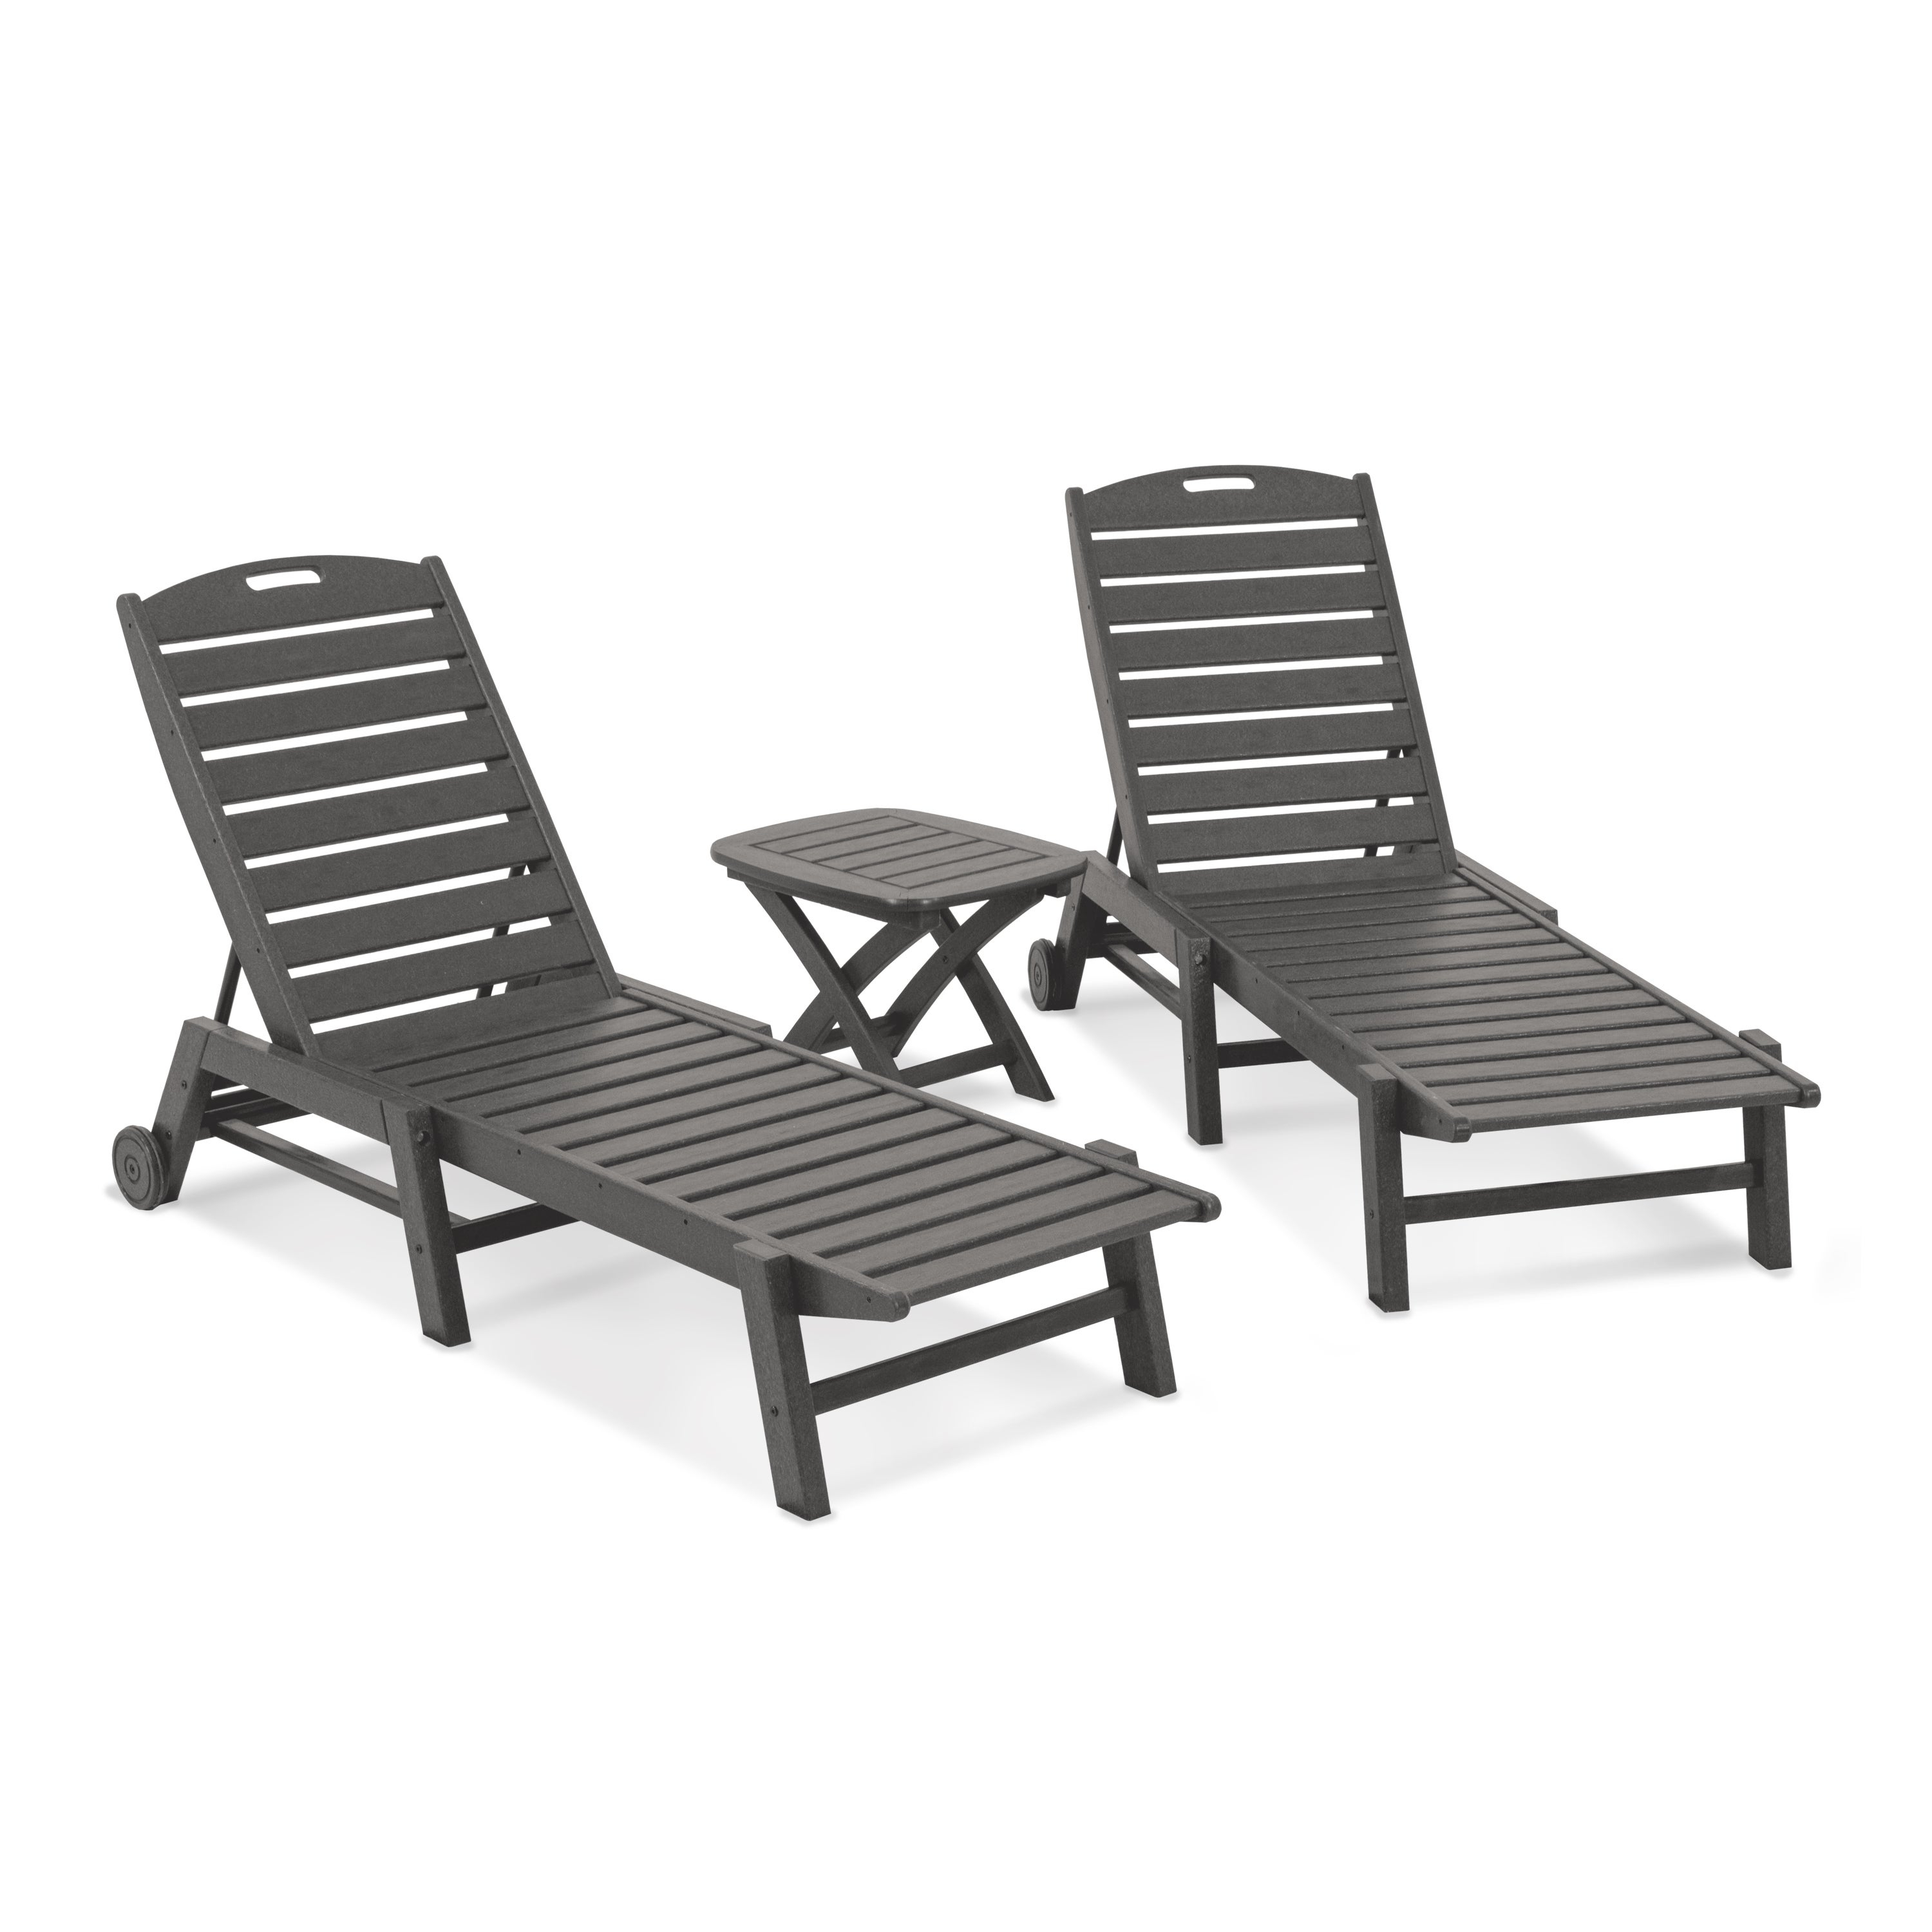 Most Popular Nautical 3 Piece Outdoor Chaise Lounge Sets With Wheels And Table With Regard To Polywood® Nautical 3 Piece Outdoor Chaise Lounge Set With Table (View 3 of 25)